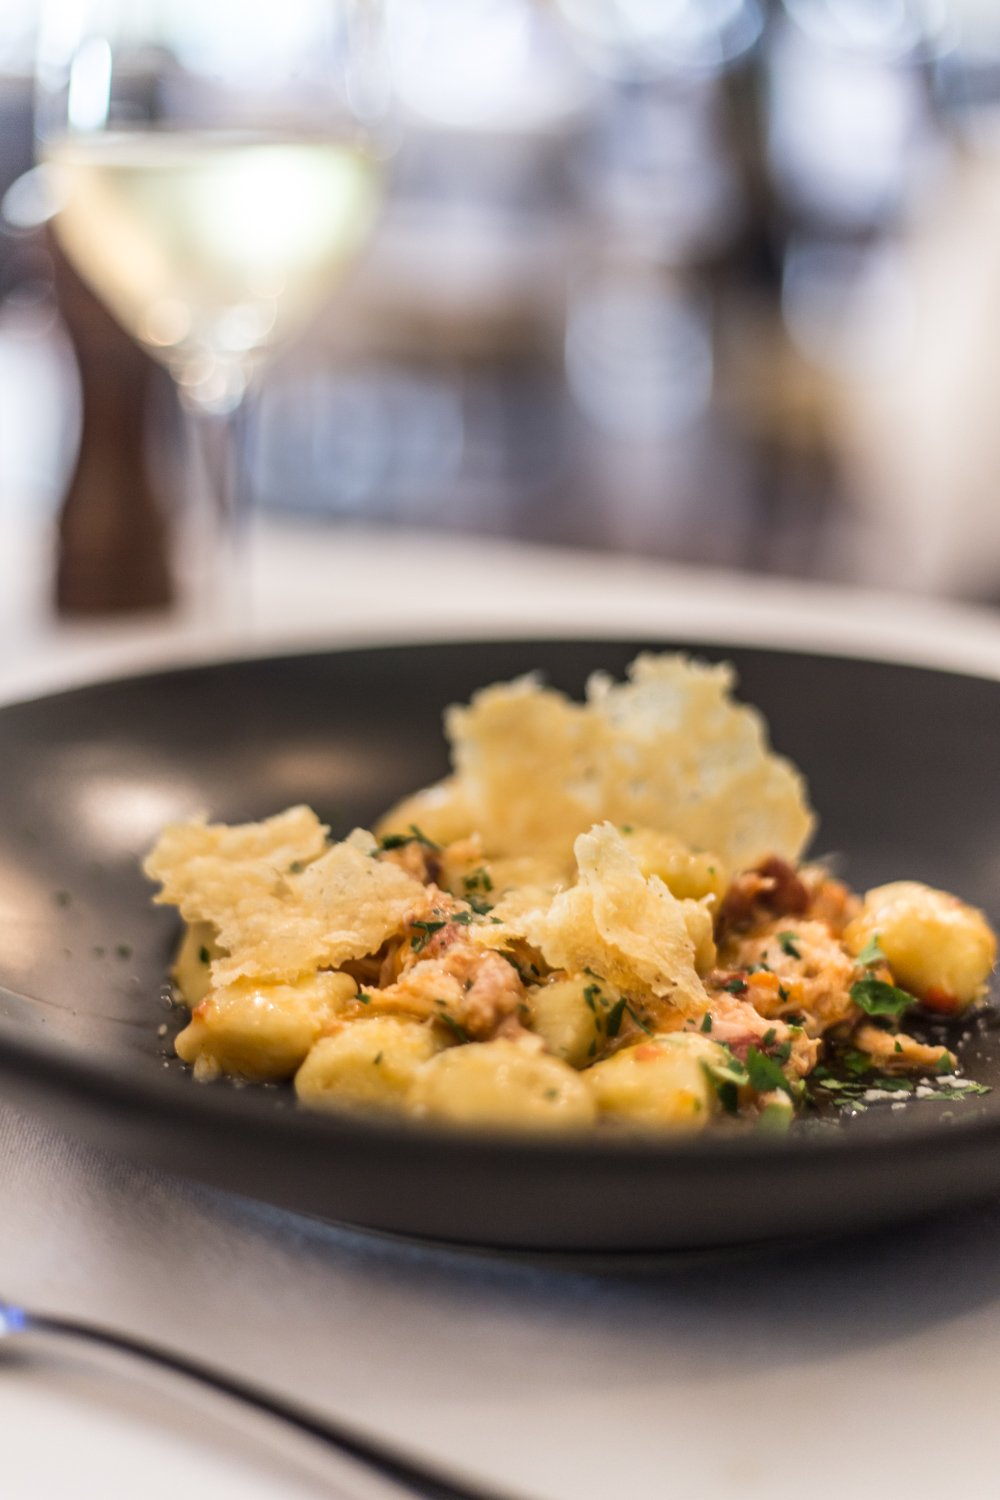 Cottonwood & Co - Potato gnocchi with rabbit ragu, pancetta, green olives, rosemary & parmesan crisp, dining at Bells at Killcare